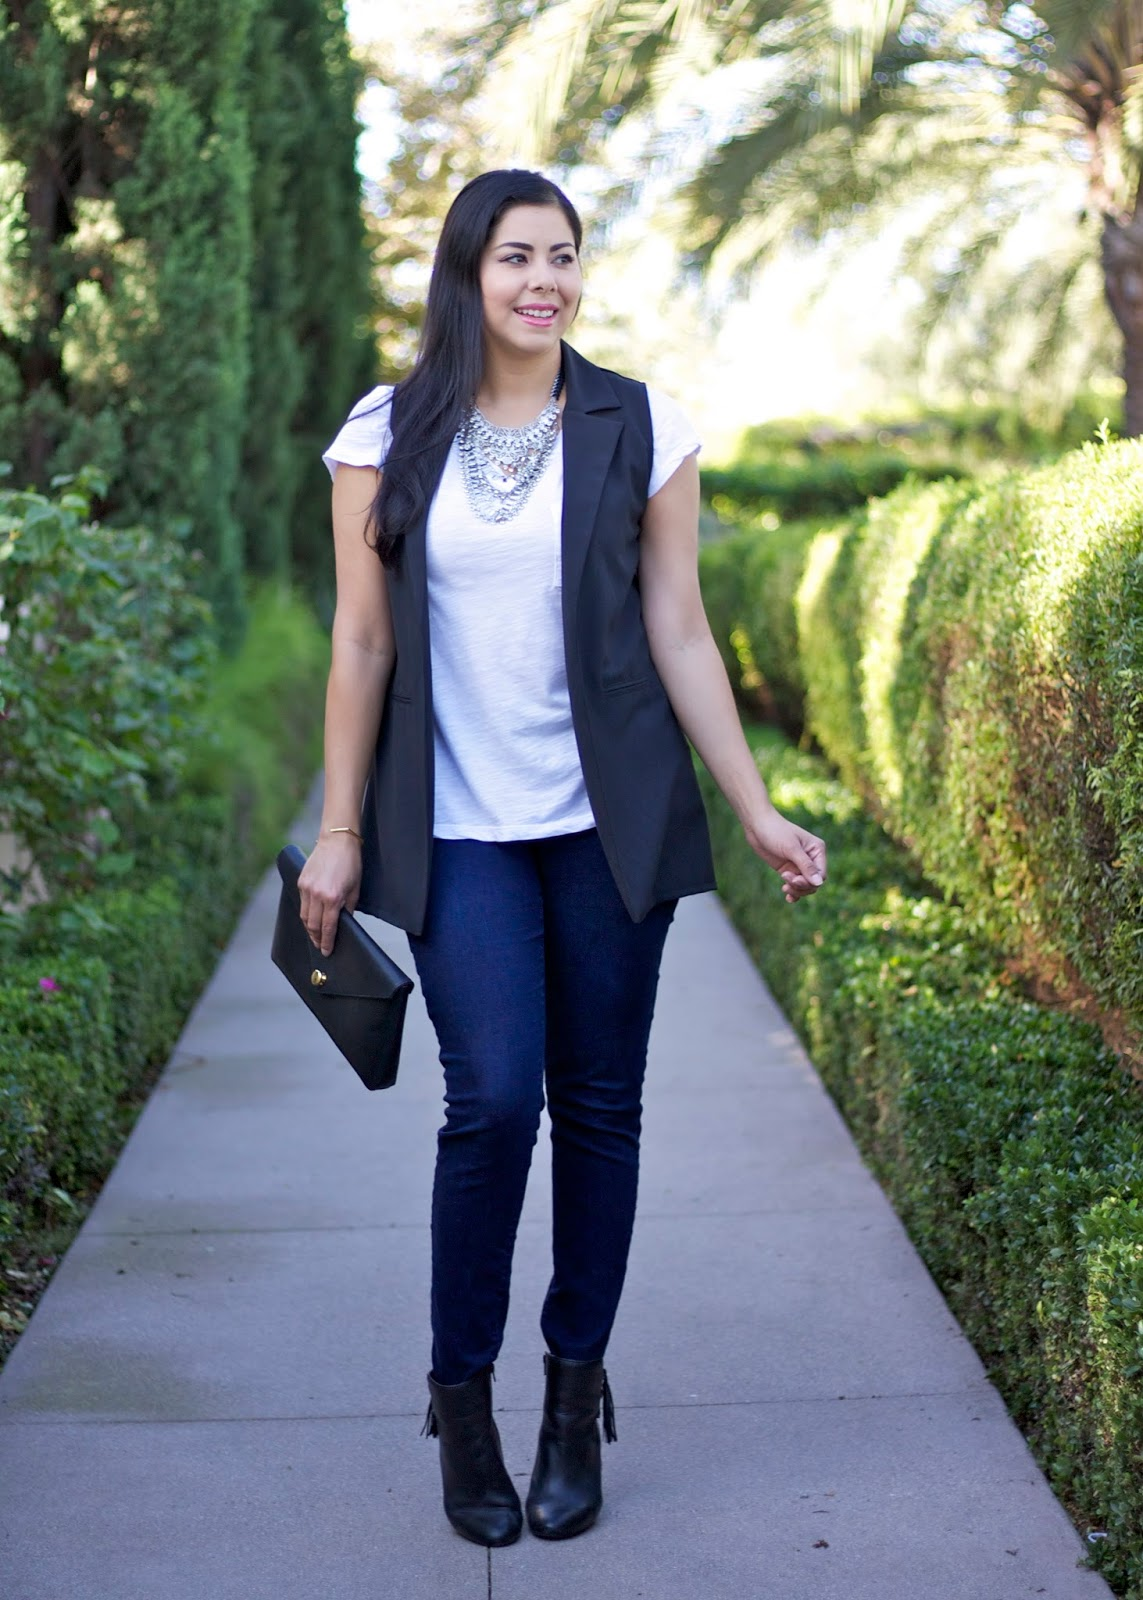 how to wear a statement necklace, silver statement necklace, forever21 statement necklace, white tee in a chic outfit